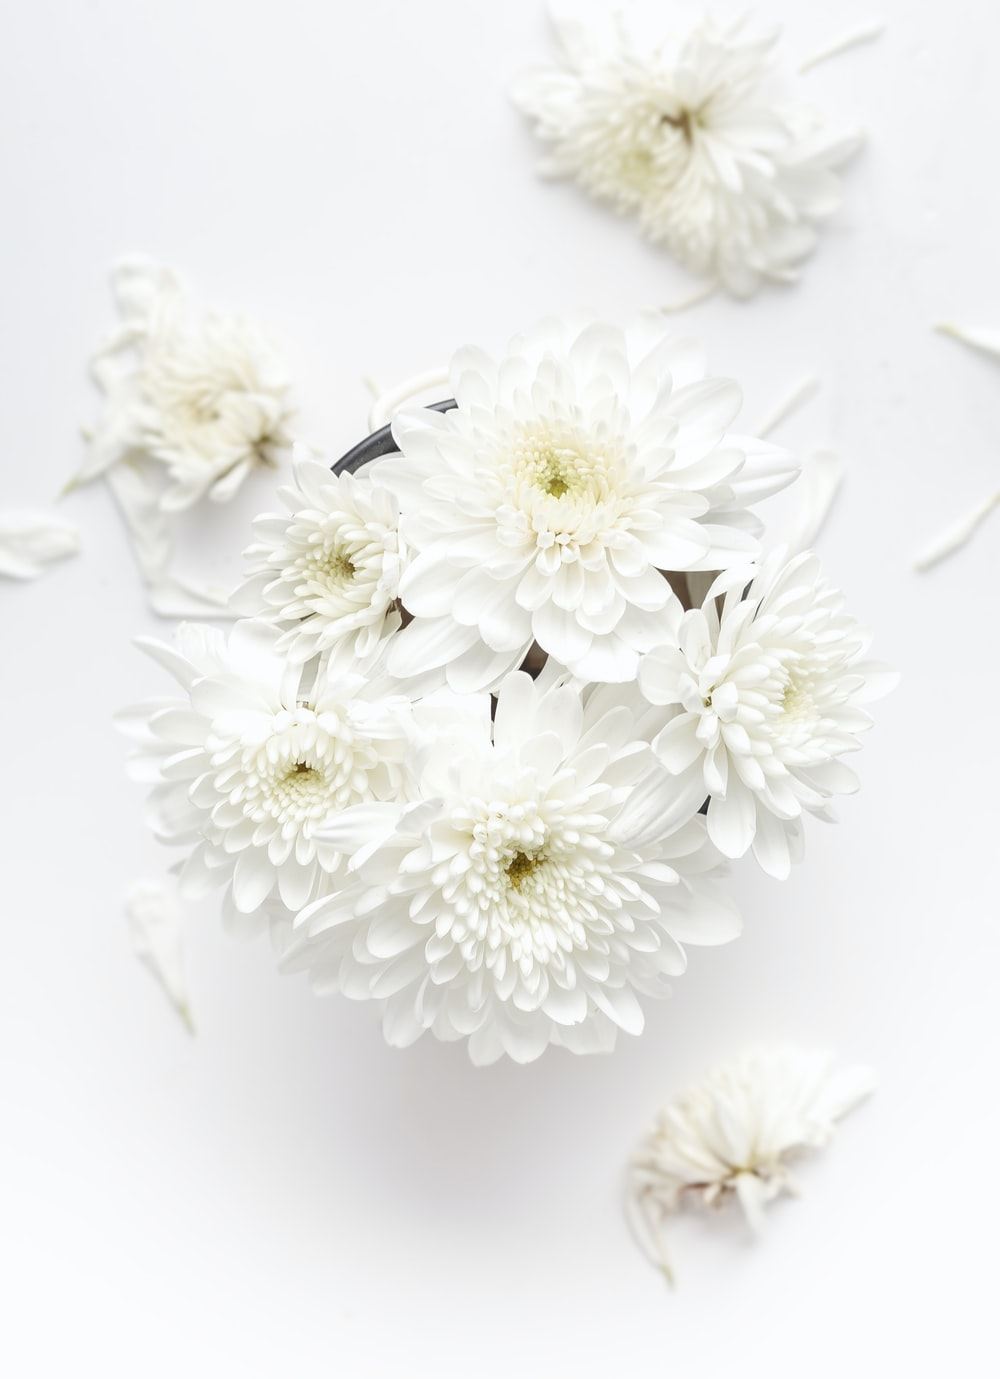 100 white flower pictures download free images on unsplash white petaled flower on white background izmirmasajfo